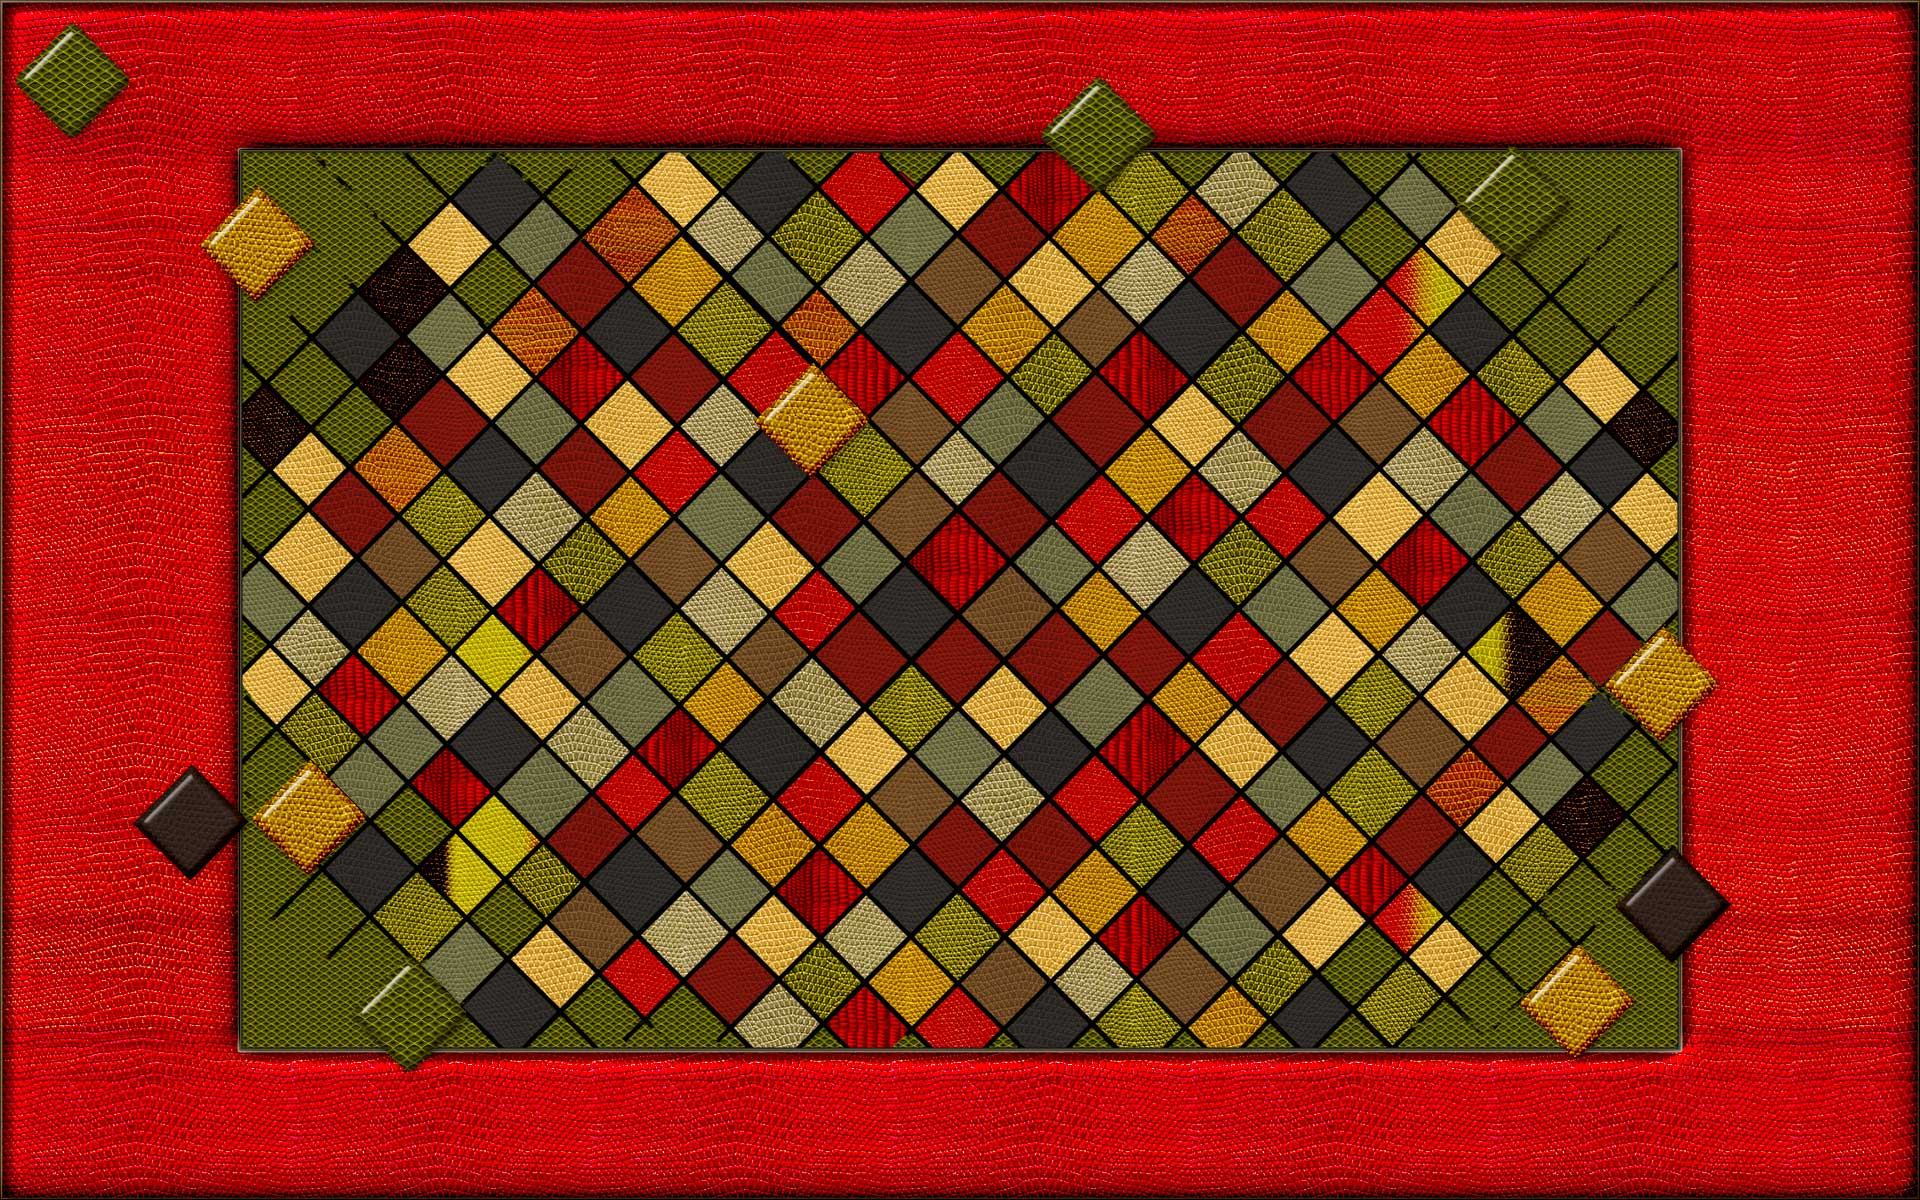 quilting with snakes 1900px x 1200px